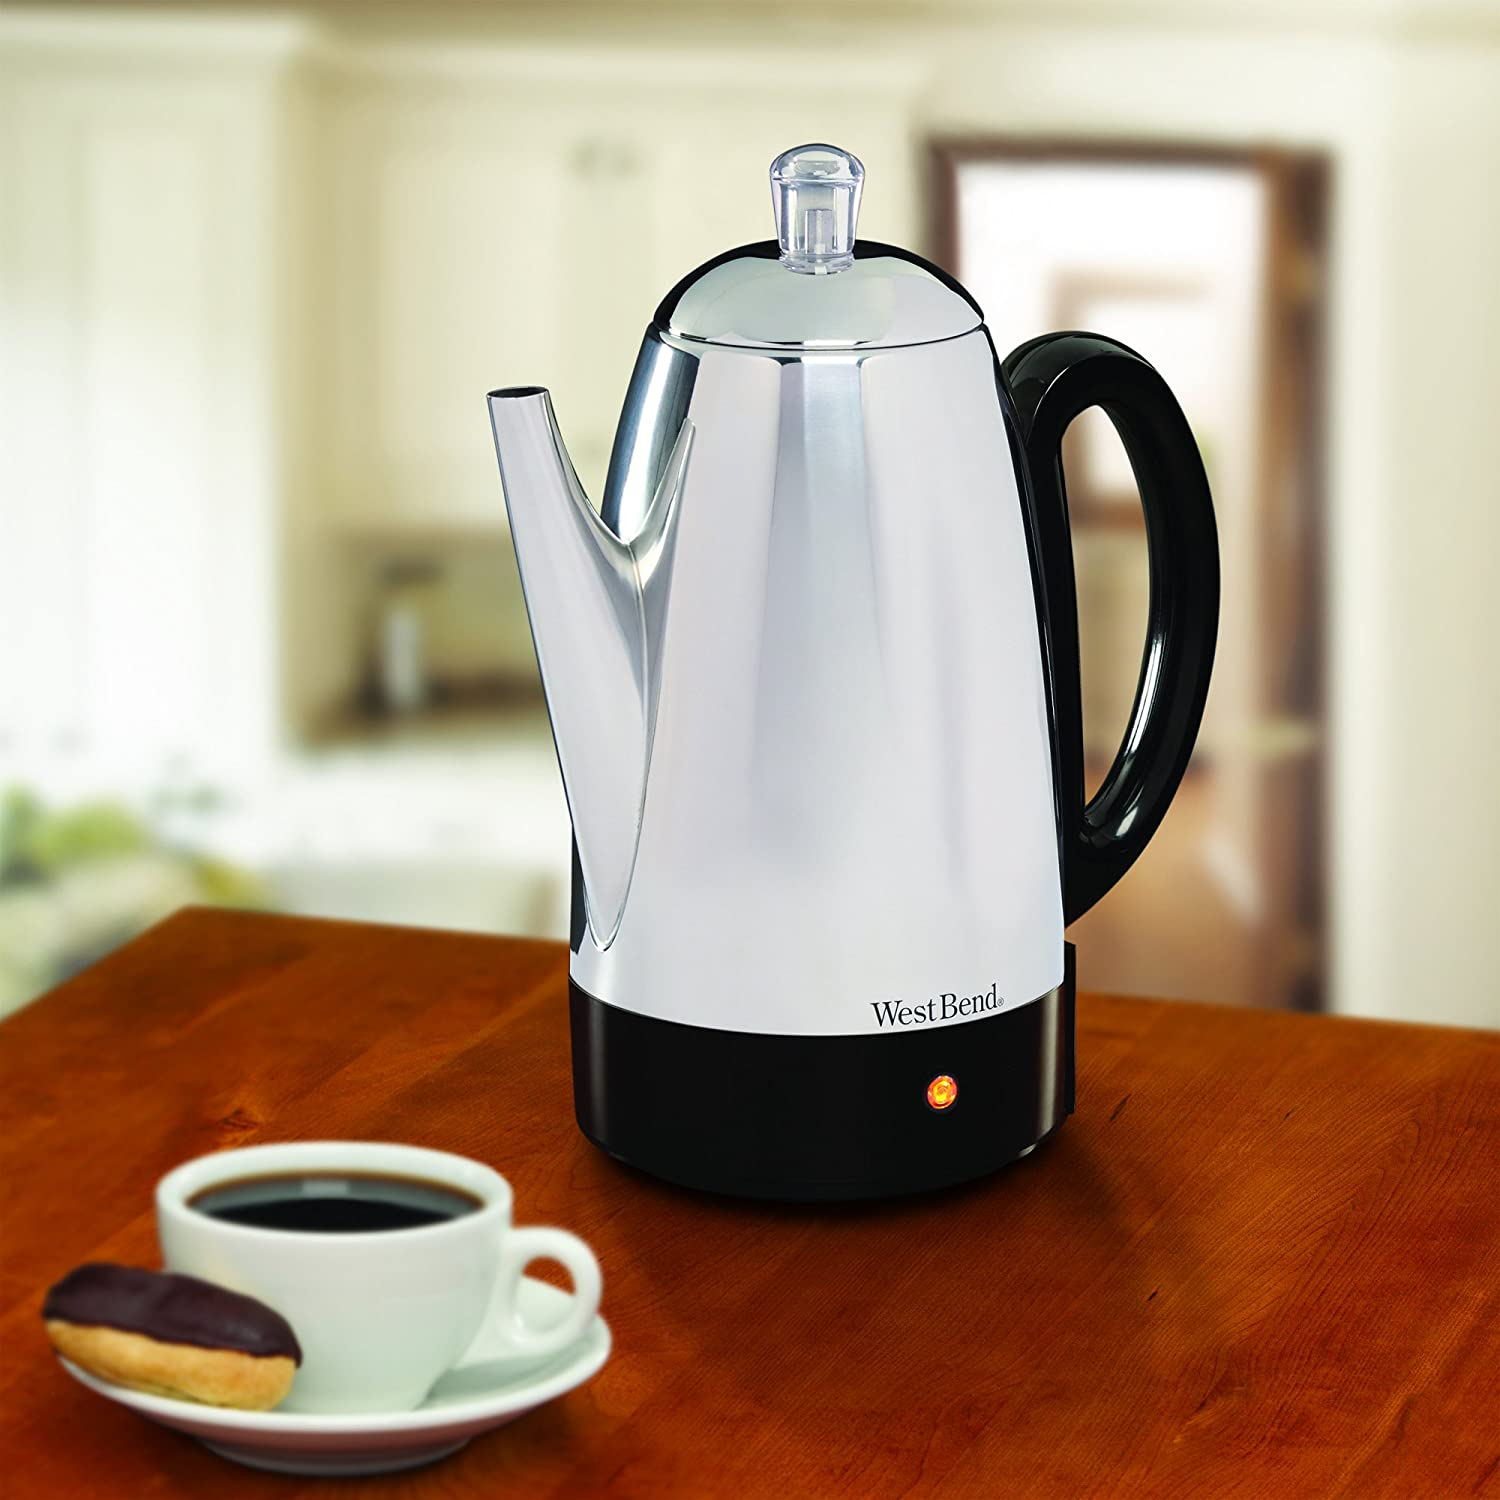 Uncategorized West Bend Kitchen Appliances amazon com west bend classic electric percolator 12 cup stainless steel 54159 coffee percolators kitchen dining